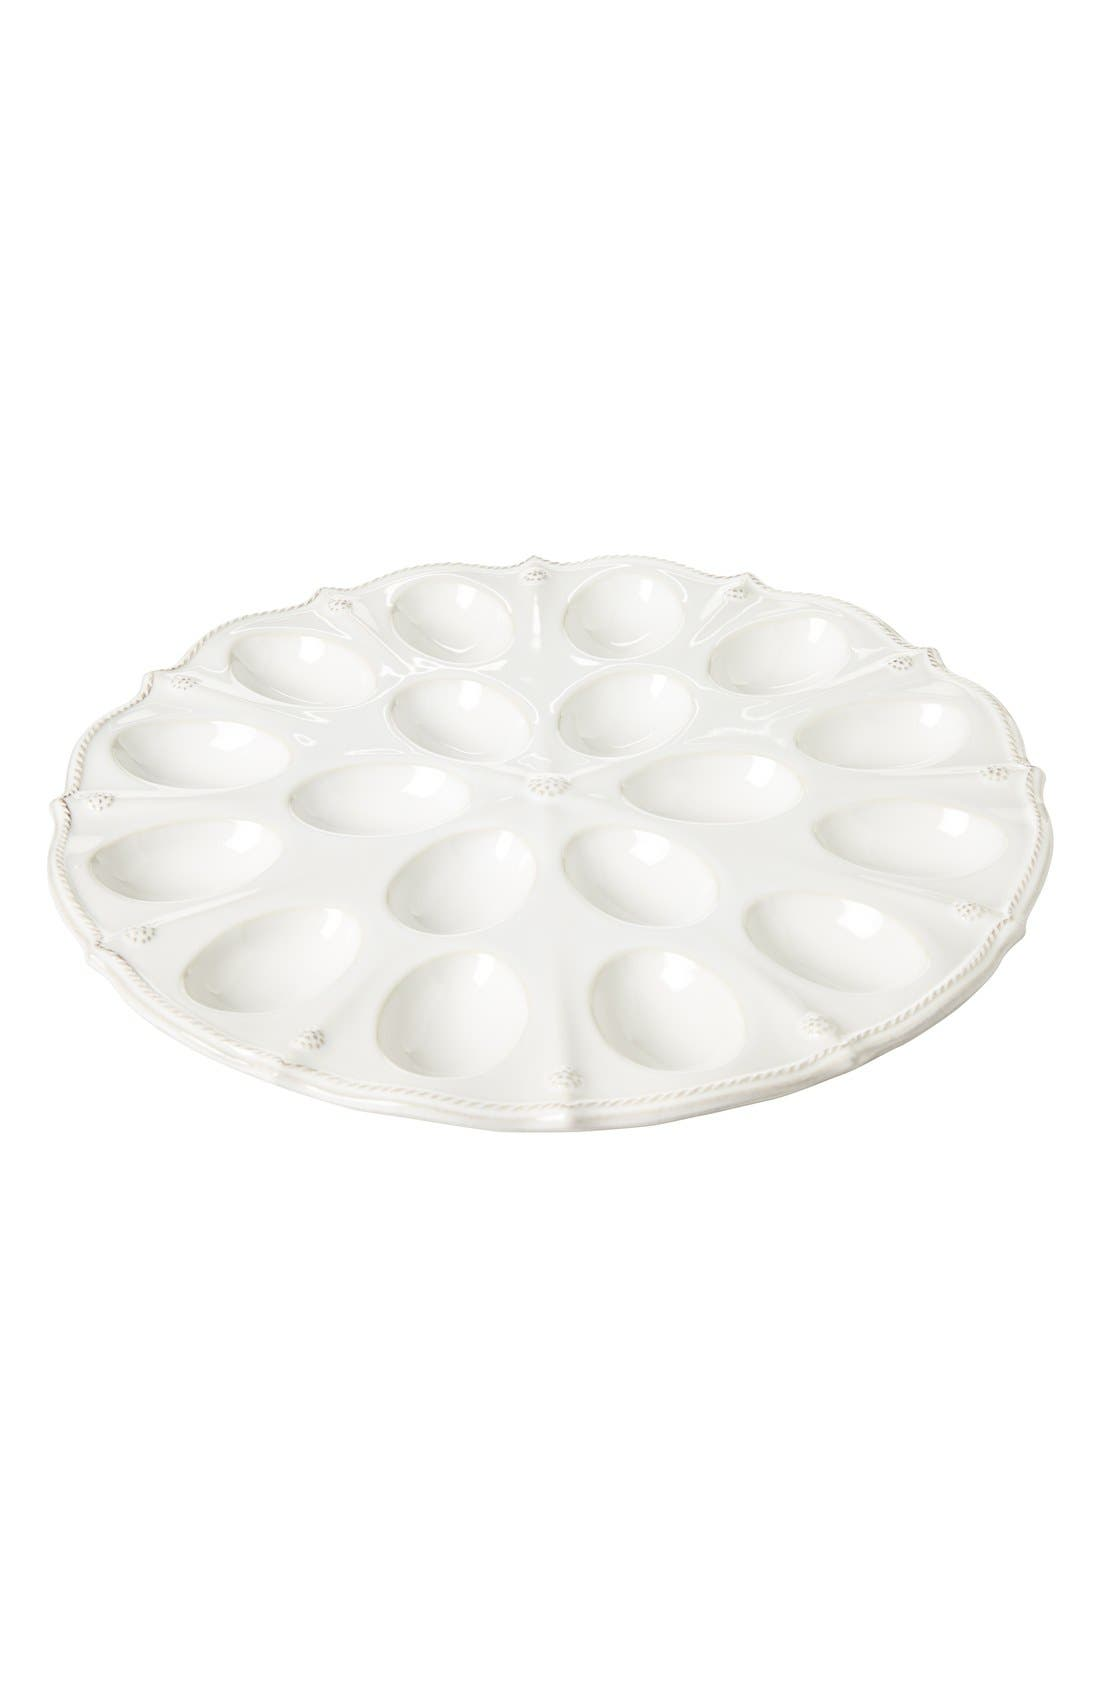 'Berry and Thread' Egg Platter,                         Main,                         color, WHITEWASH